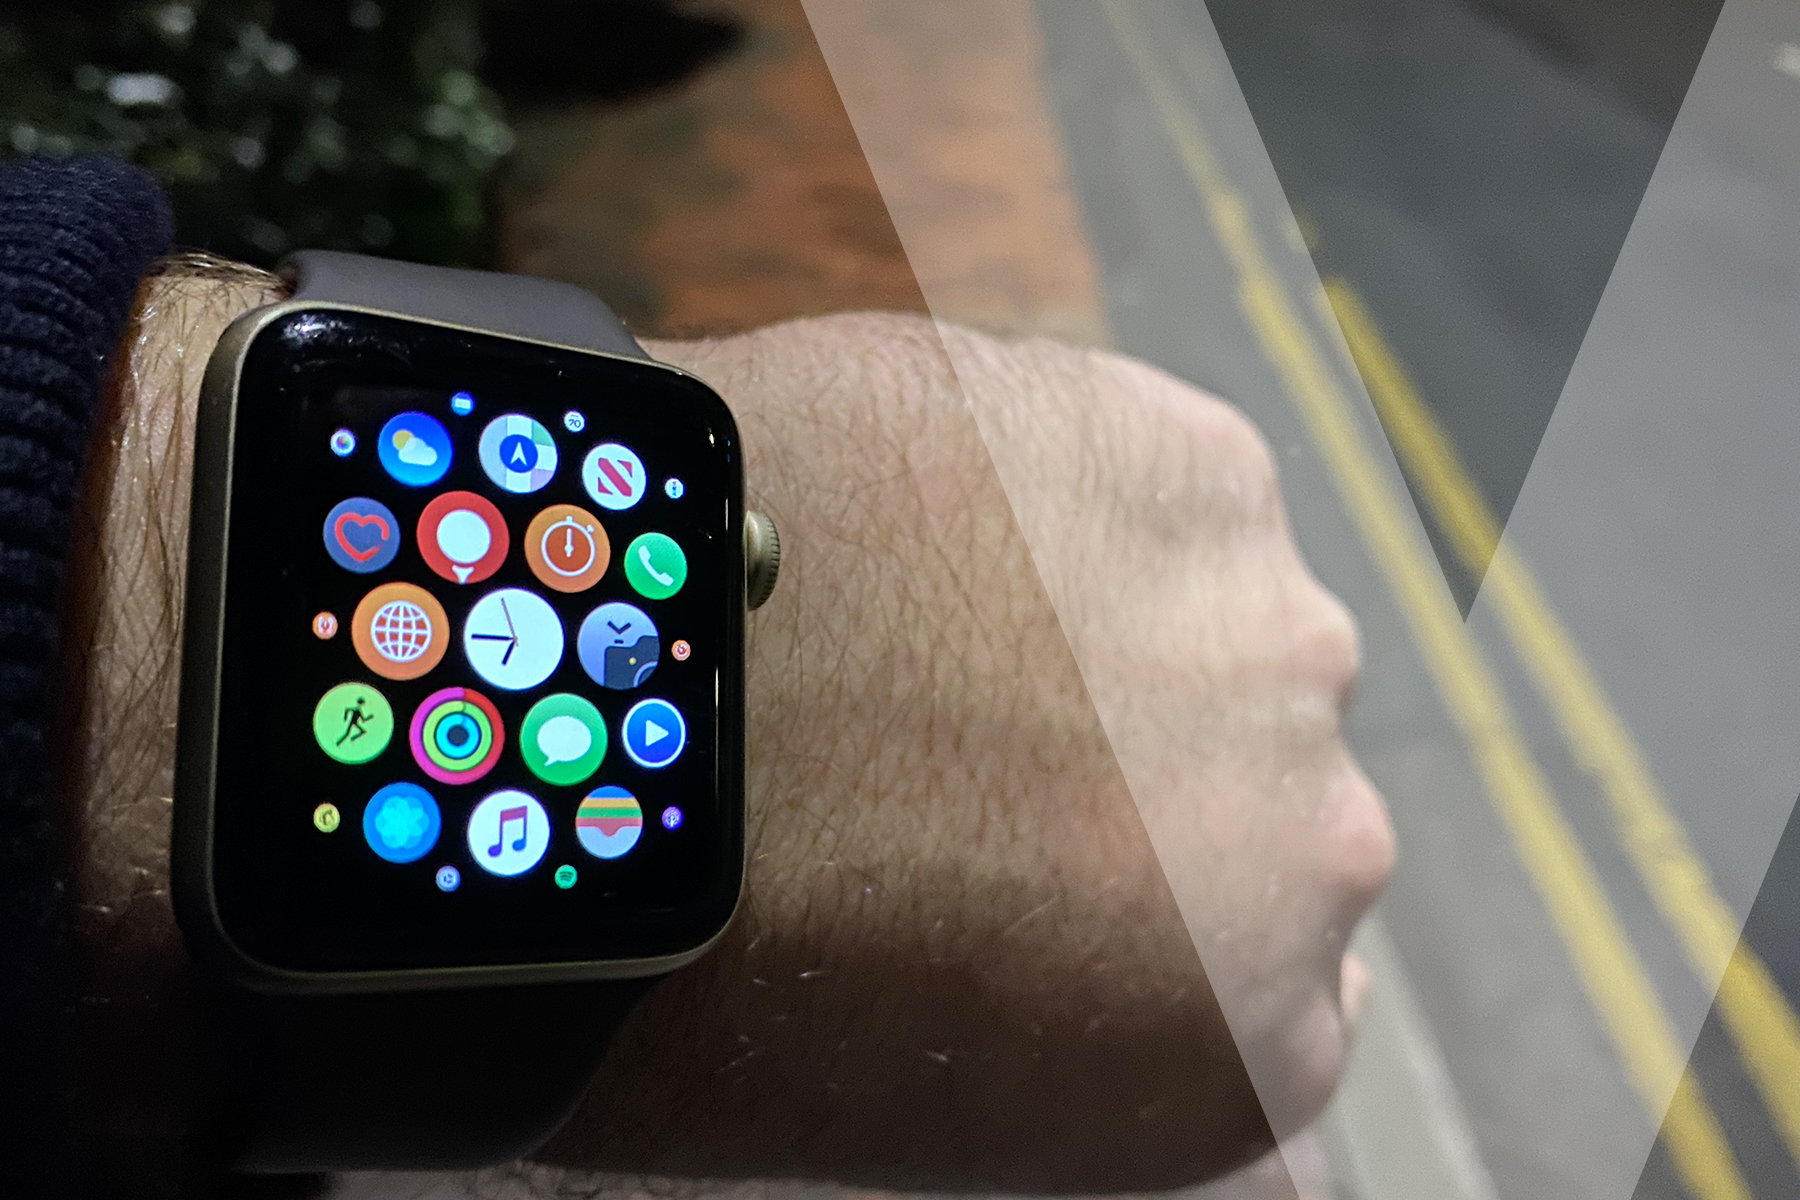 apple watch needs one thing - a fully working siri